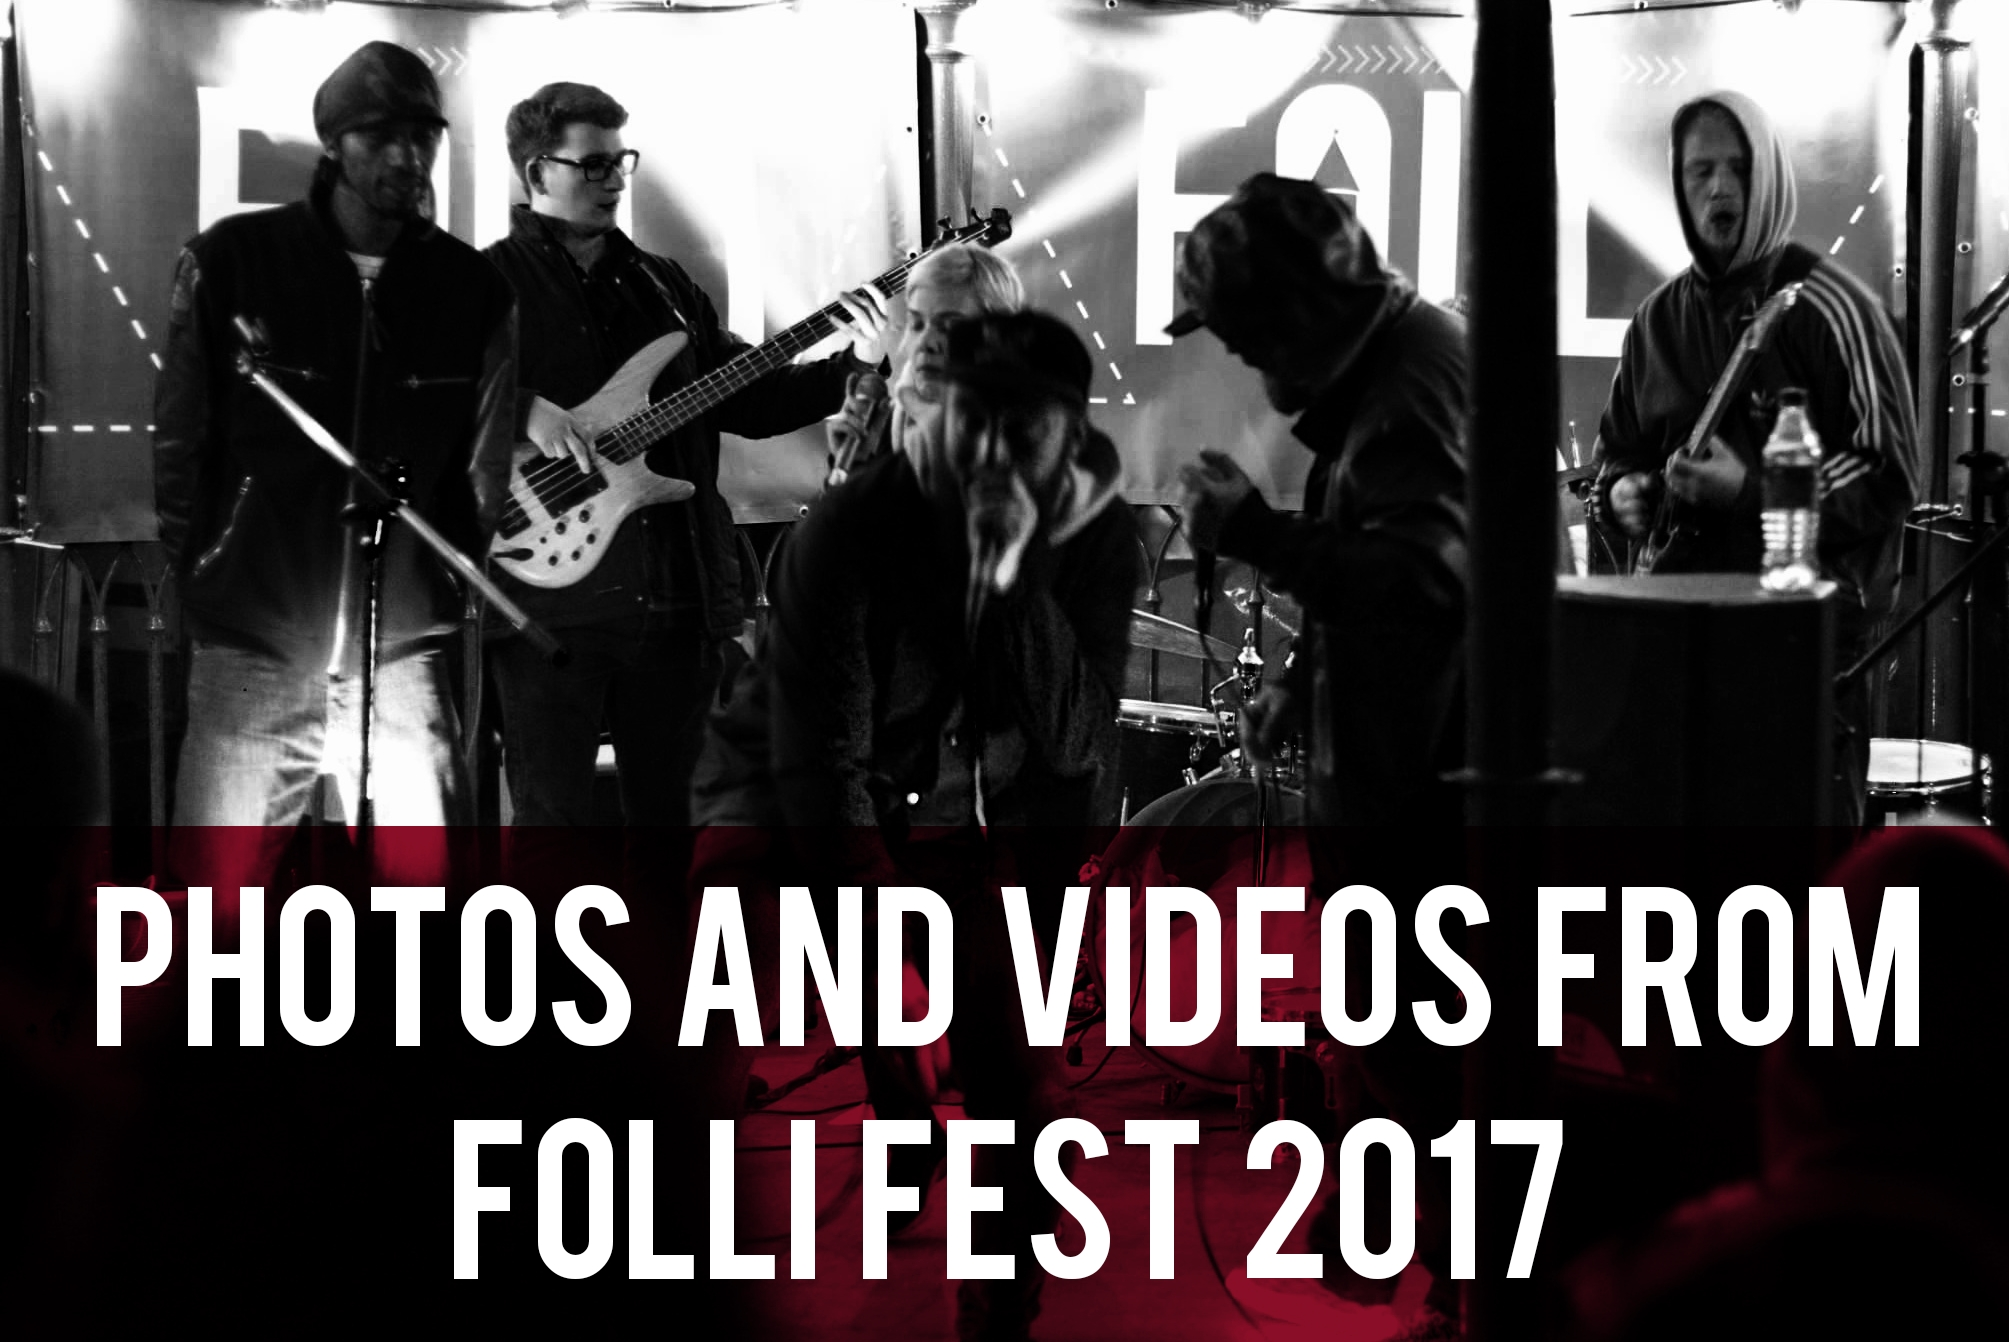 Photos and Videos from Folli Fest 2017